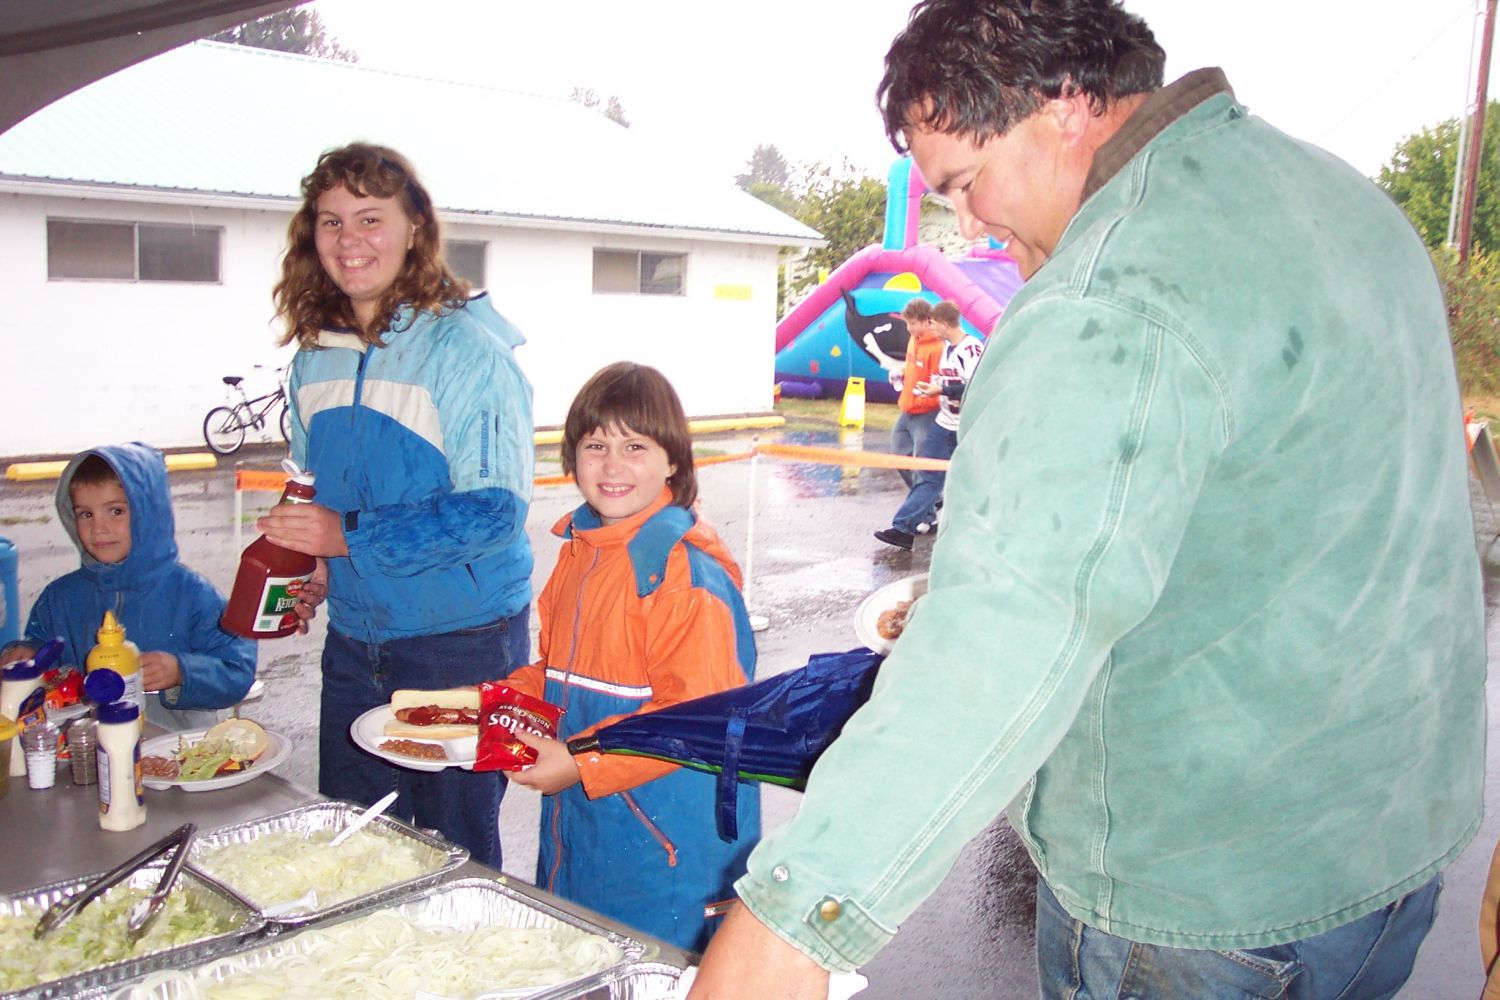 Families having fun together in Scio, OR